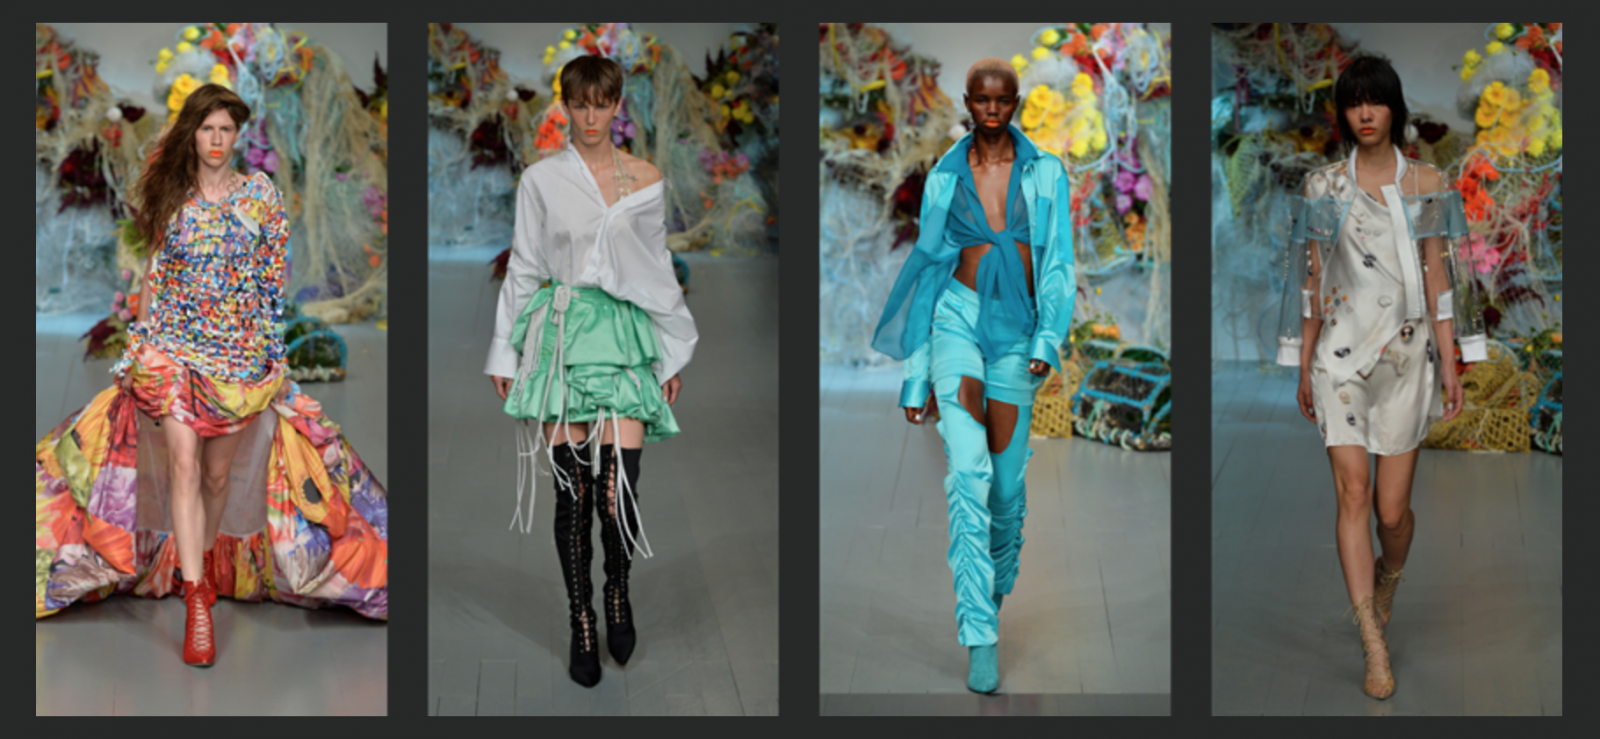 Lead Image for a post on the Fyodor Golan Spring Summer 2019 runway show at London Fashion Week for Fashion Voyeur Blog featuring 5 key looks